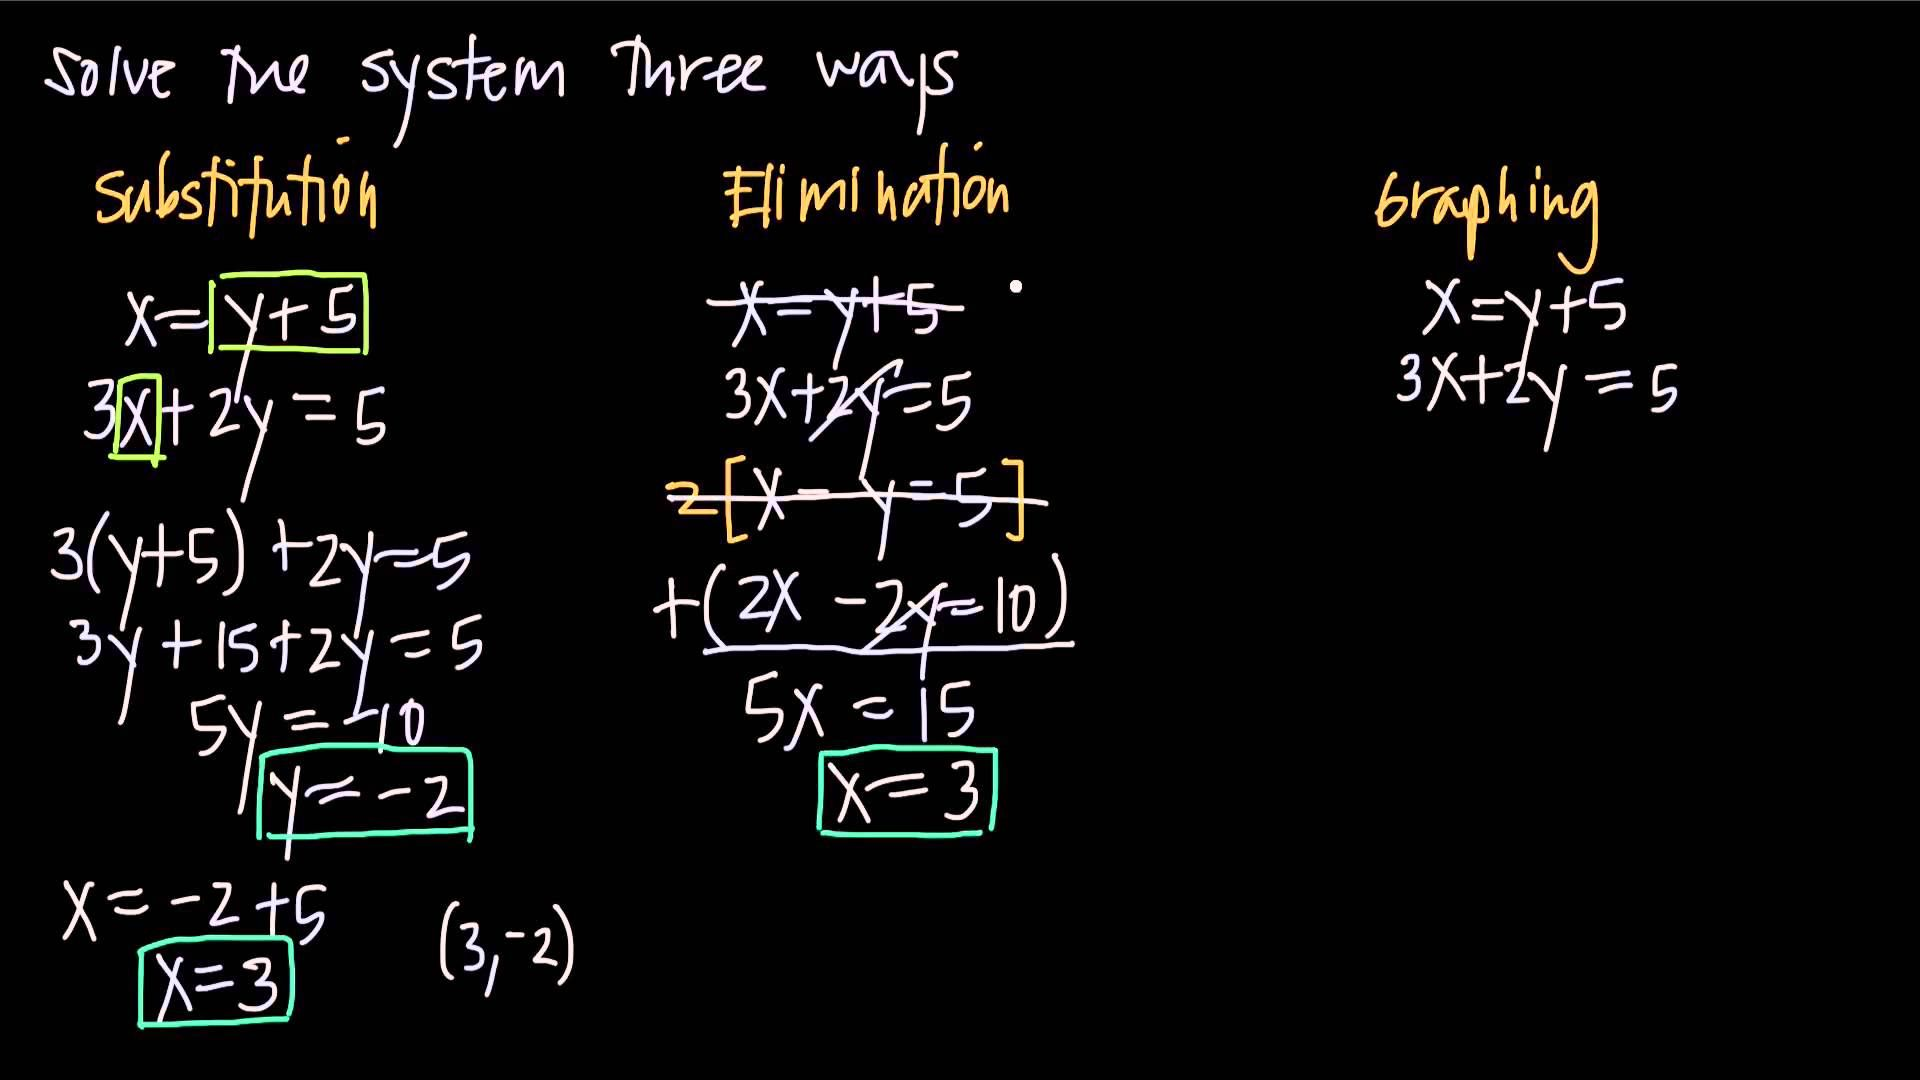 Solving Systems Of Equations Three Ways